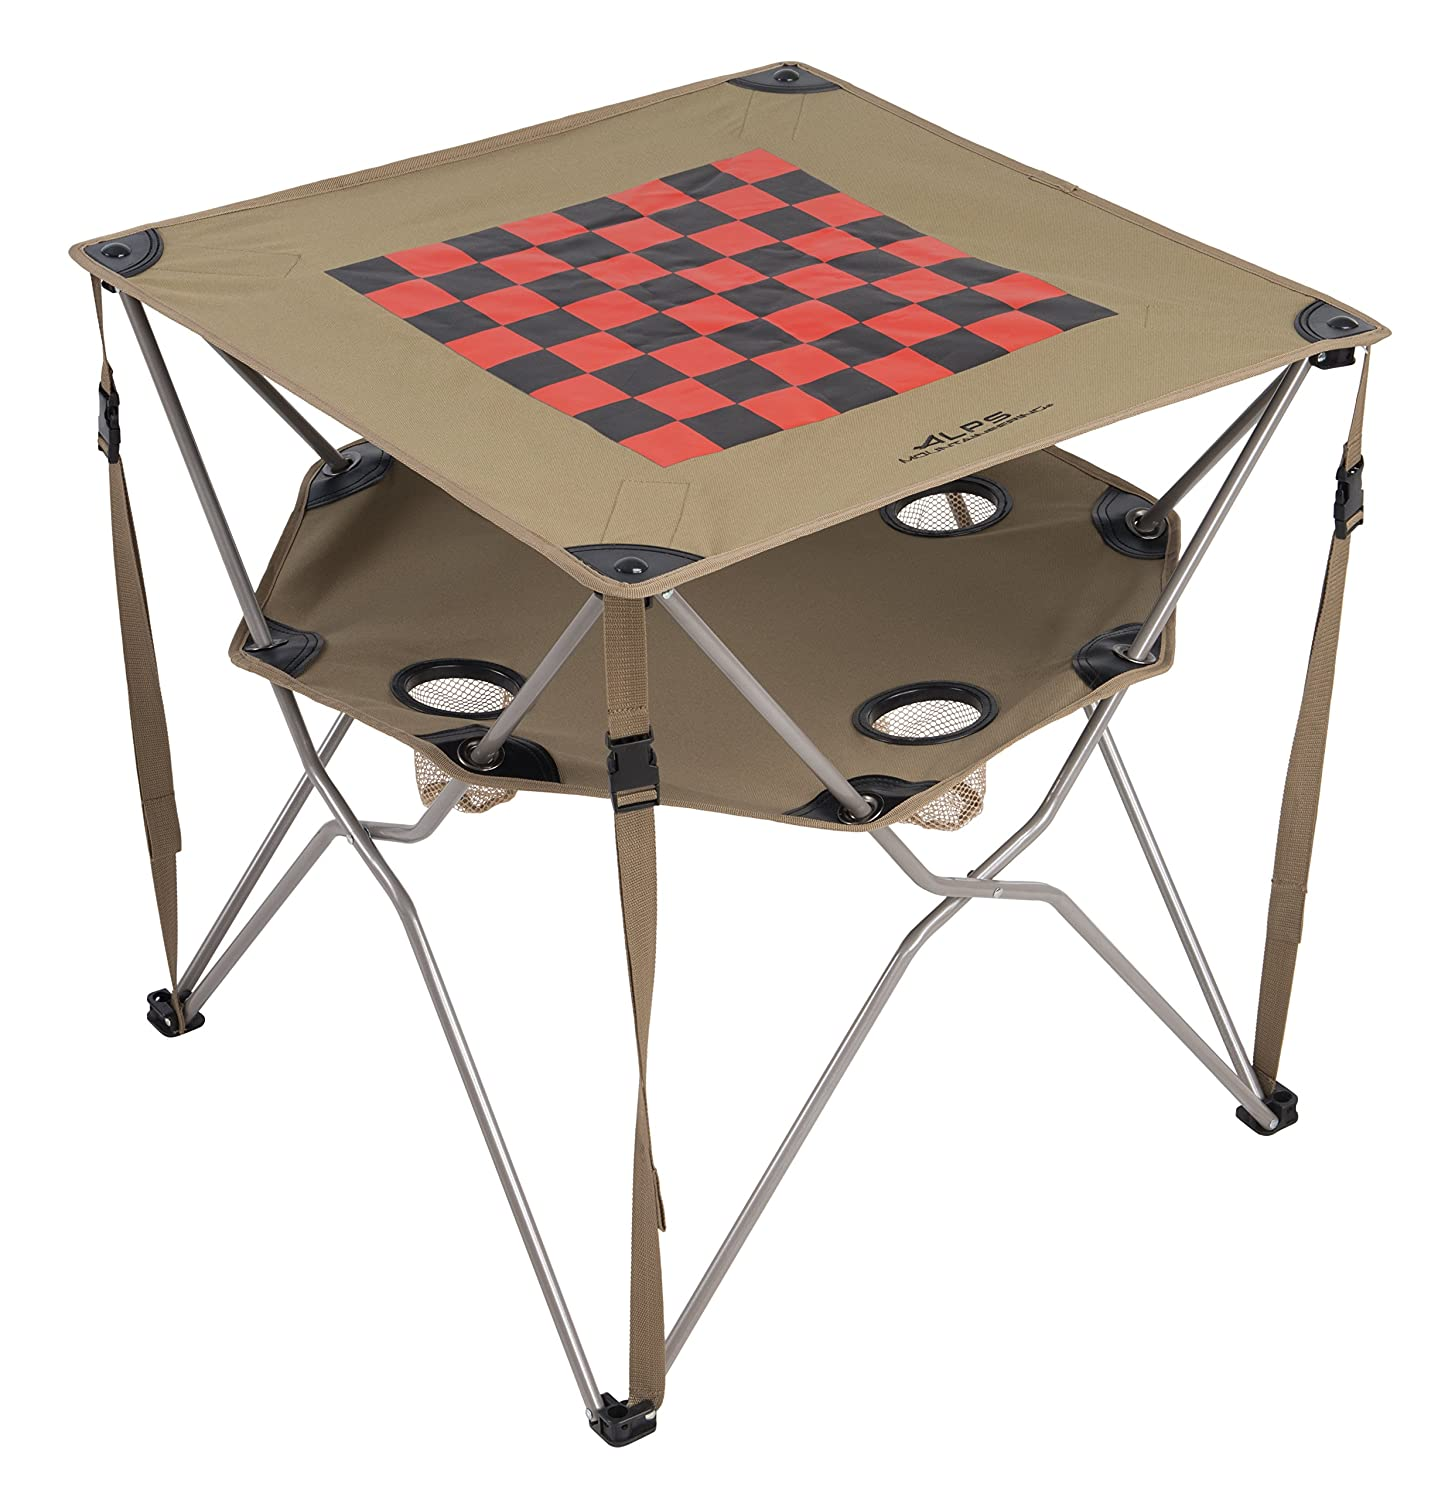 Ordinaire Amazon.com : ALPS Mountaineering Eclipse Table Checkerboard : Camping Tables  : Sports U0026 Outdoors